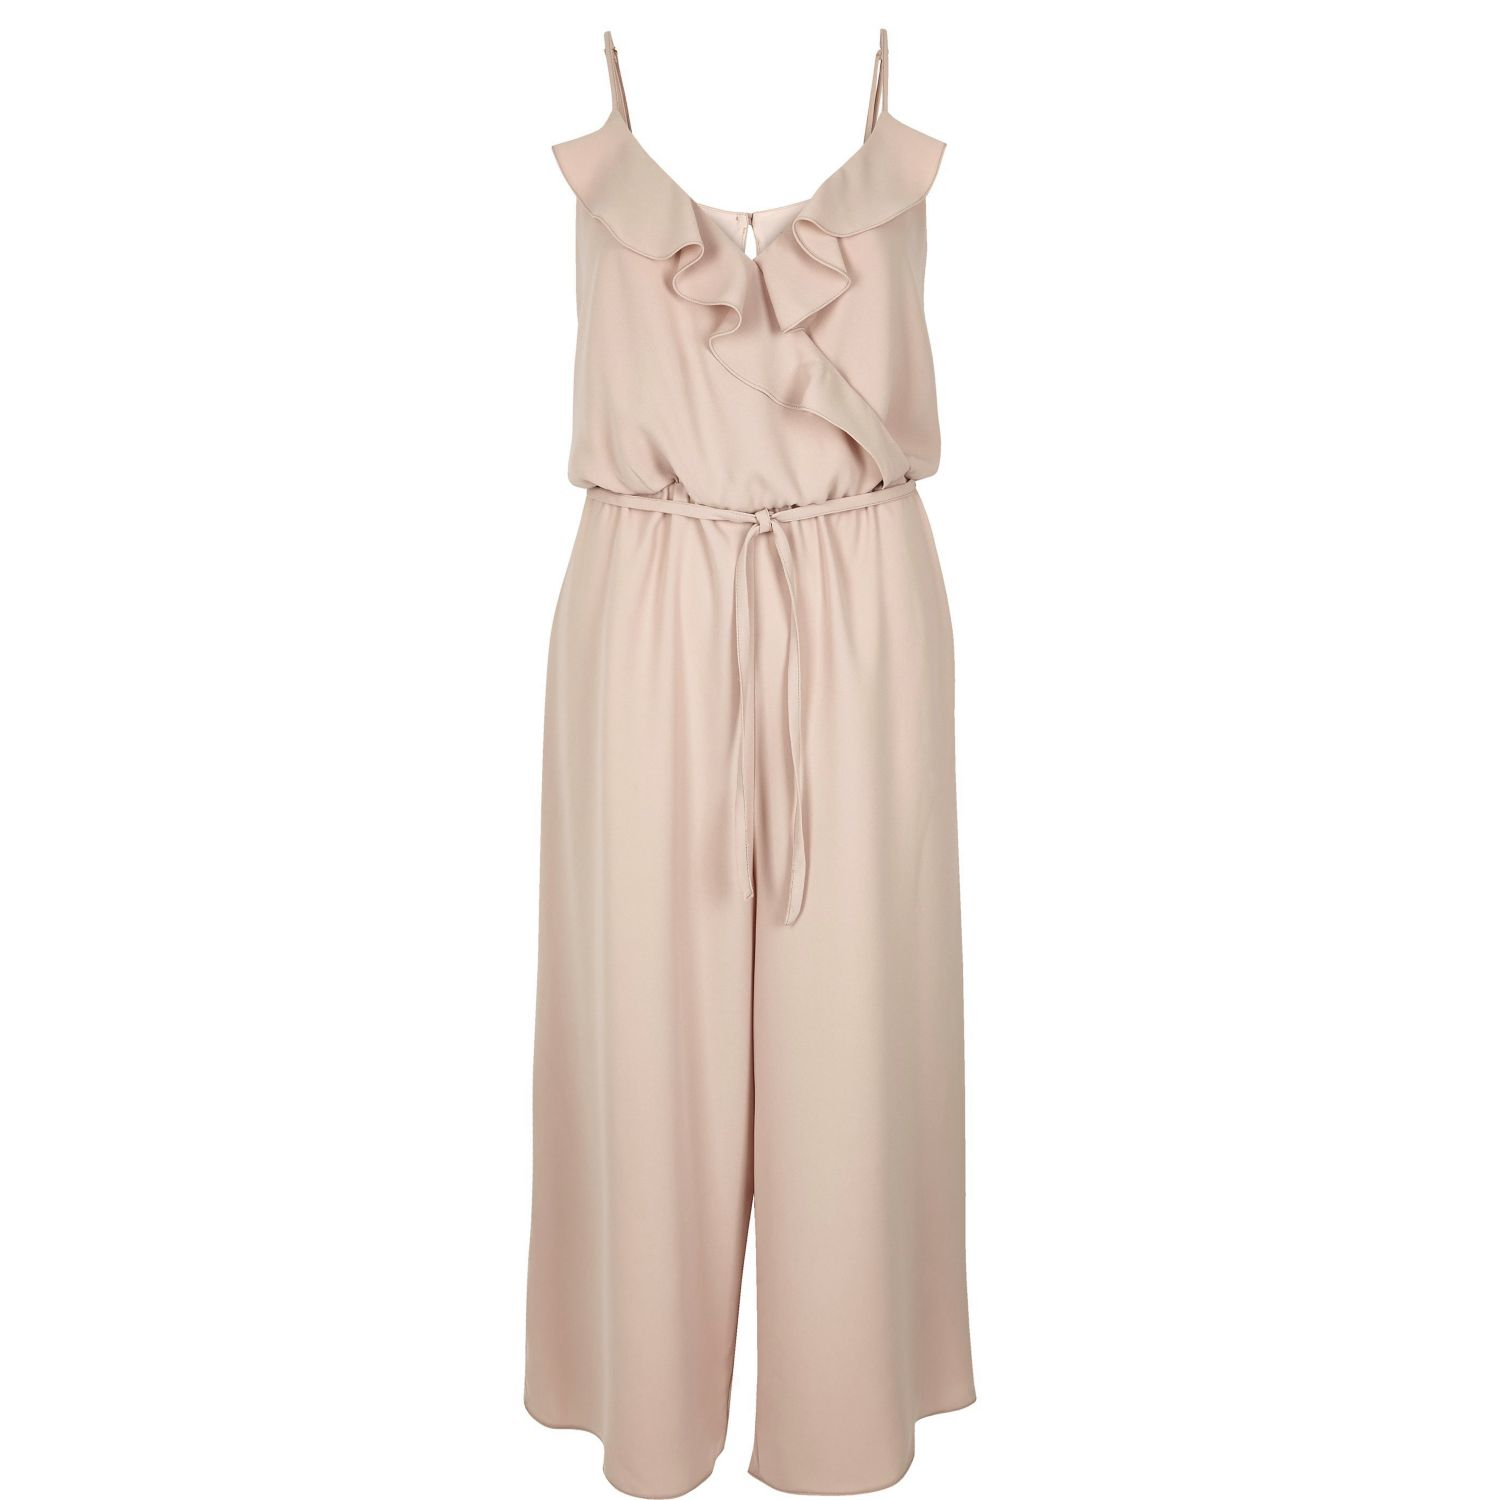 3934bf4a9f40 Lyst - River Island Light Pink Frilly Wrap Front Culotte Jumpsuit in ...